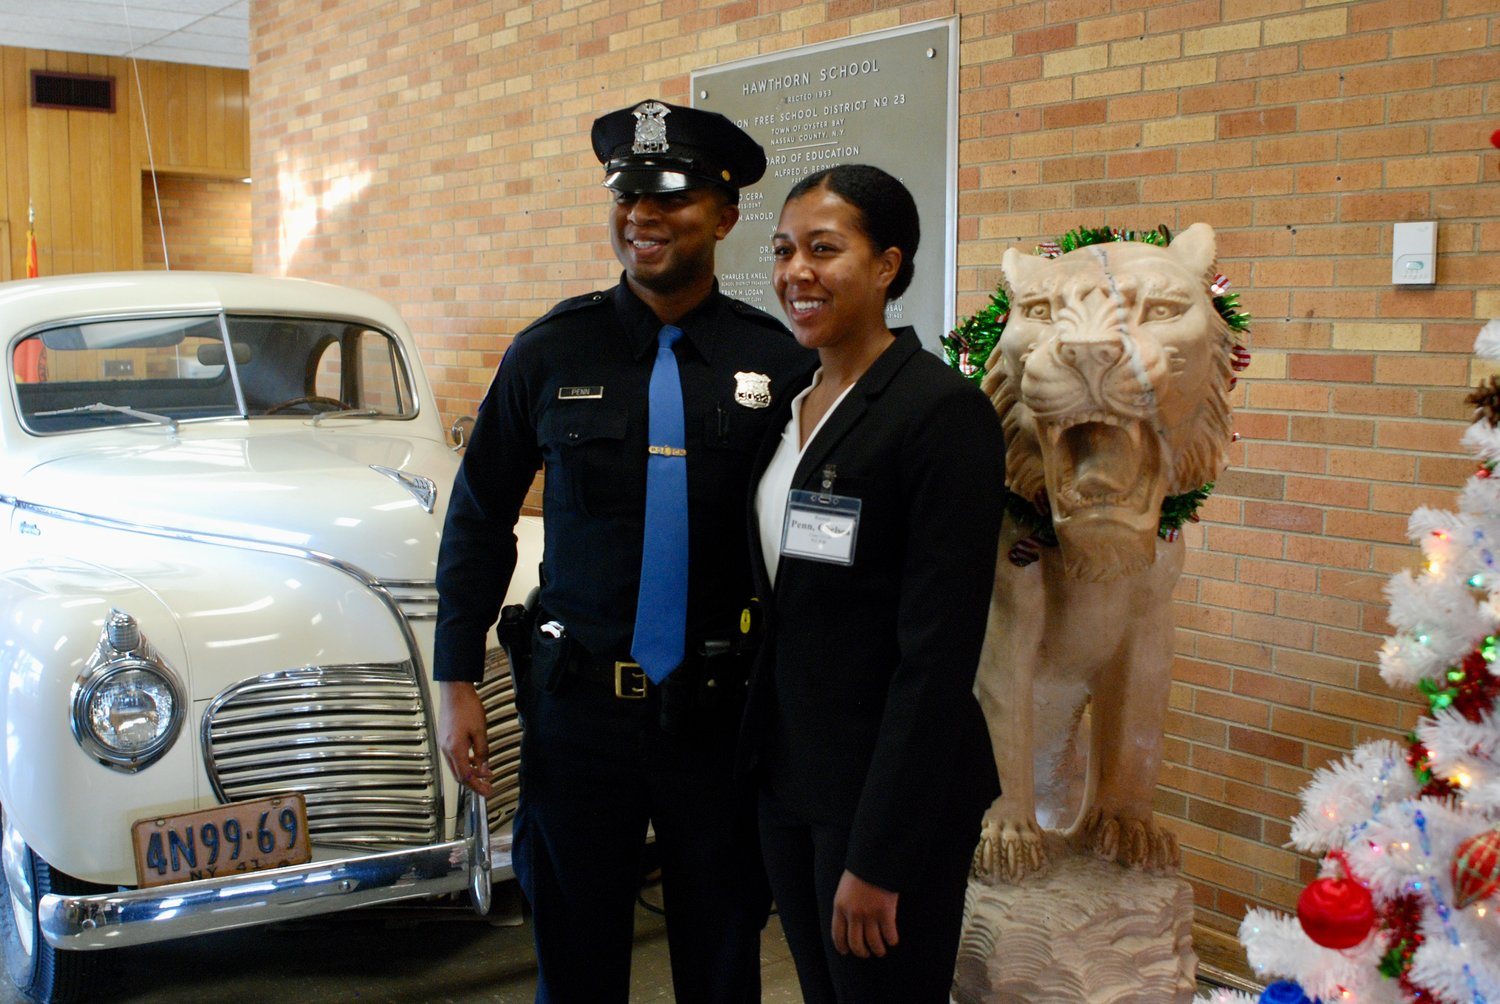 Police recruit Chelsea Penn was joined at the swearing-in by her brother, Derrick Penn, an officer with the NCPD's 8th Precinct.